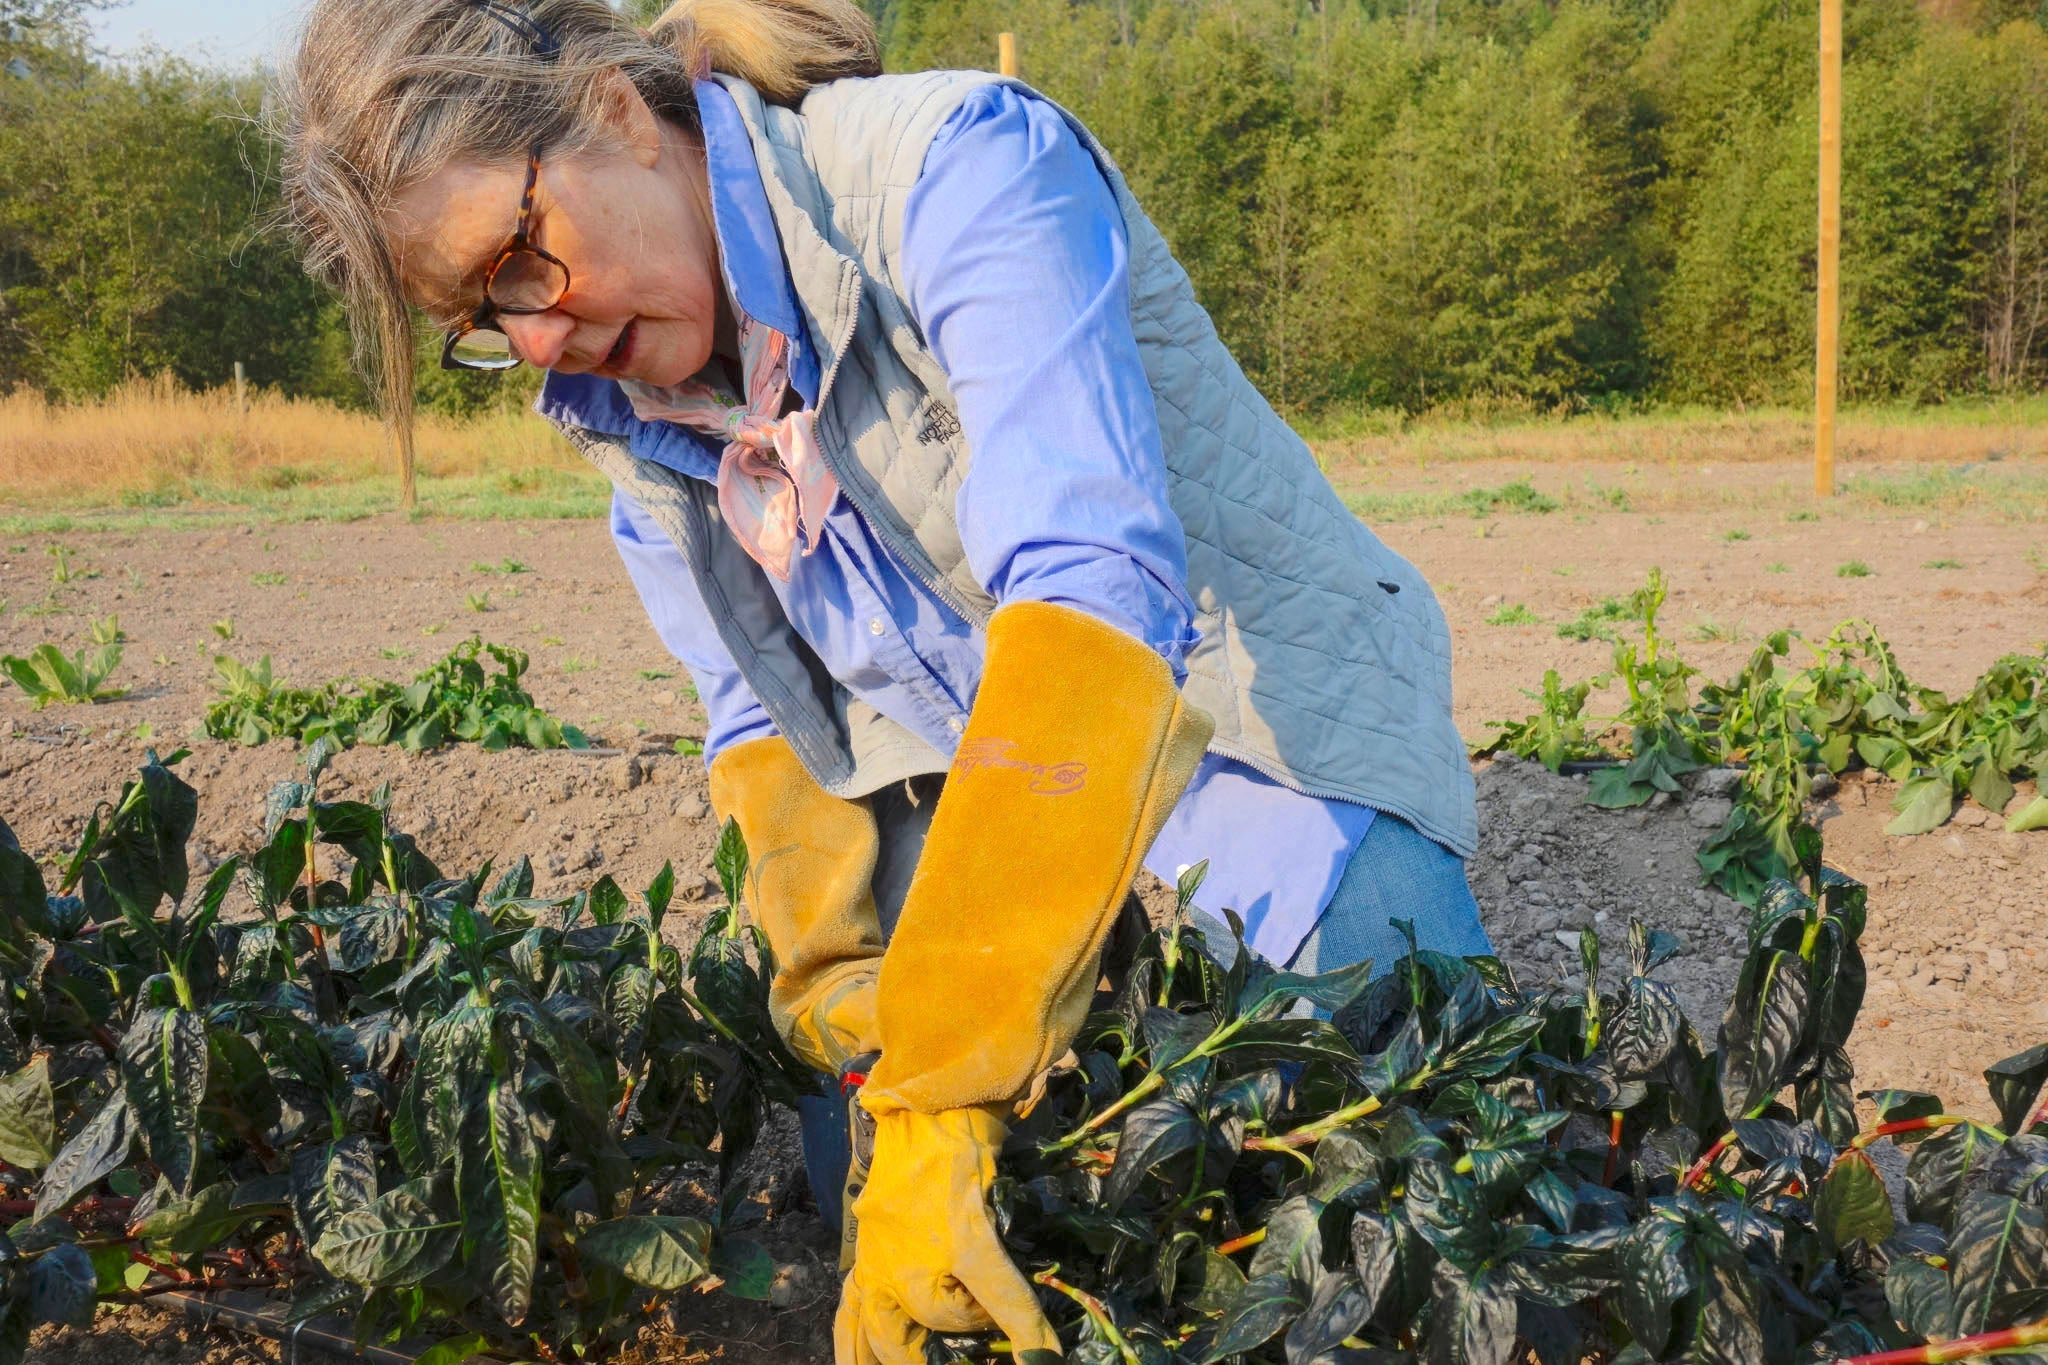 Patricia Belyea harvesting indigo plants at Okan Arts, Summer 2020